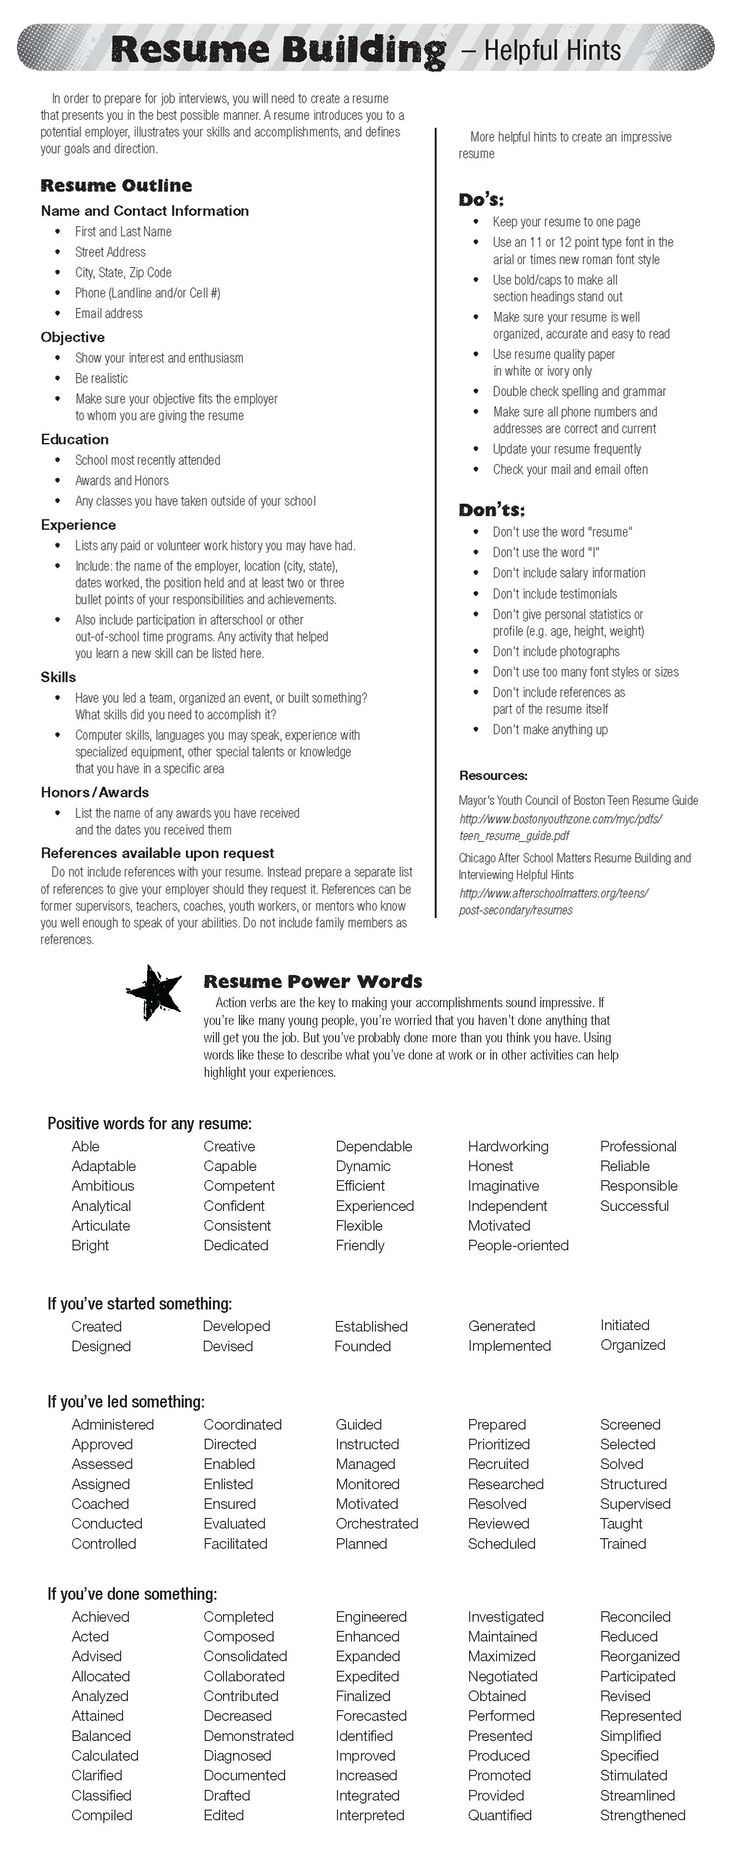 Opposenewapstandardsus  Pleasant  Ideas About Resume On Pinterest  Cv Format Resume  With Lovable Check Out Todays Resume Building Tips Resume Resumepowerwords With Divine Academic Resumes Also Resume Examples For Jobs With No Experience In Addition Cv Resume Format And Online Resume Generator As Well As Pl Sql Resume Additionally Sample Of Good Resume From Pinterestcom With Opposenewapstandardsus  Lovable  Ideas About Resume On Pinterest  Cv Format Resume  With Divine Check Out Todays Resume Building Tips Resume Resumepowerwords And Pleasant Academic Resumes Also Resume Examples For Jobs With No Experience In Addition Cv Resume Format From Pinterestcom